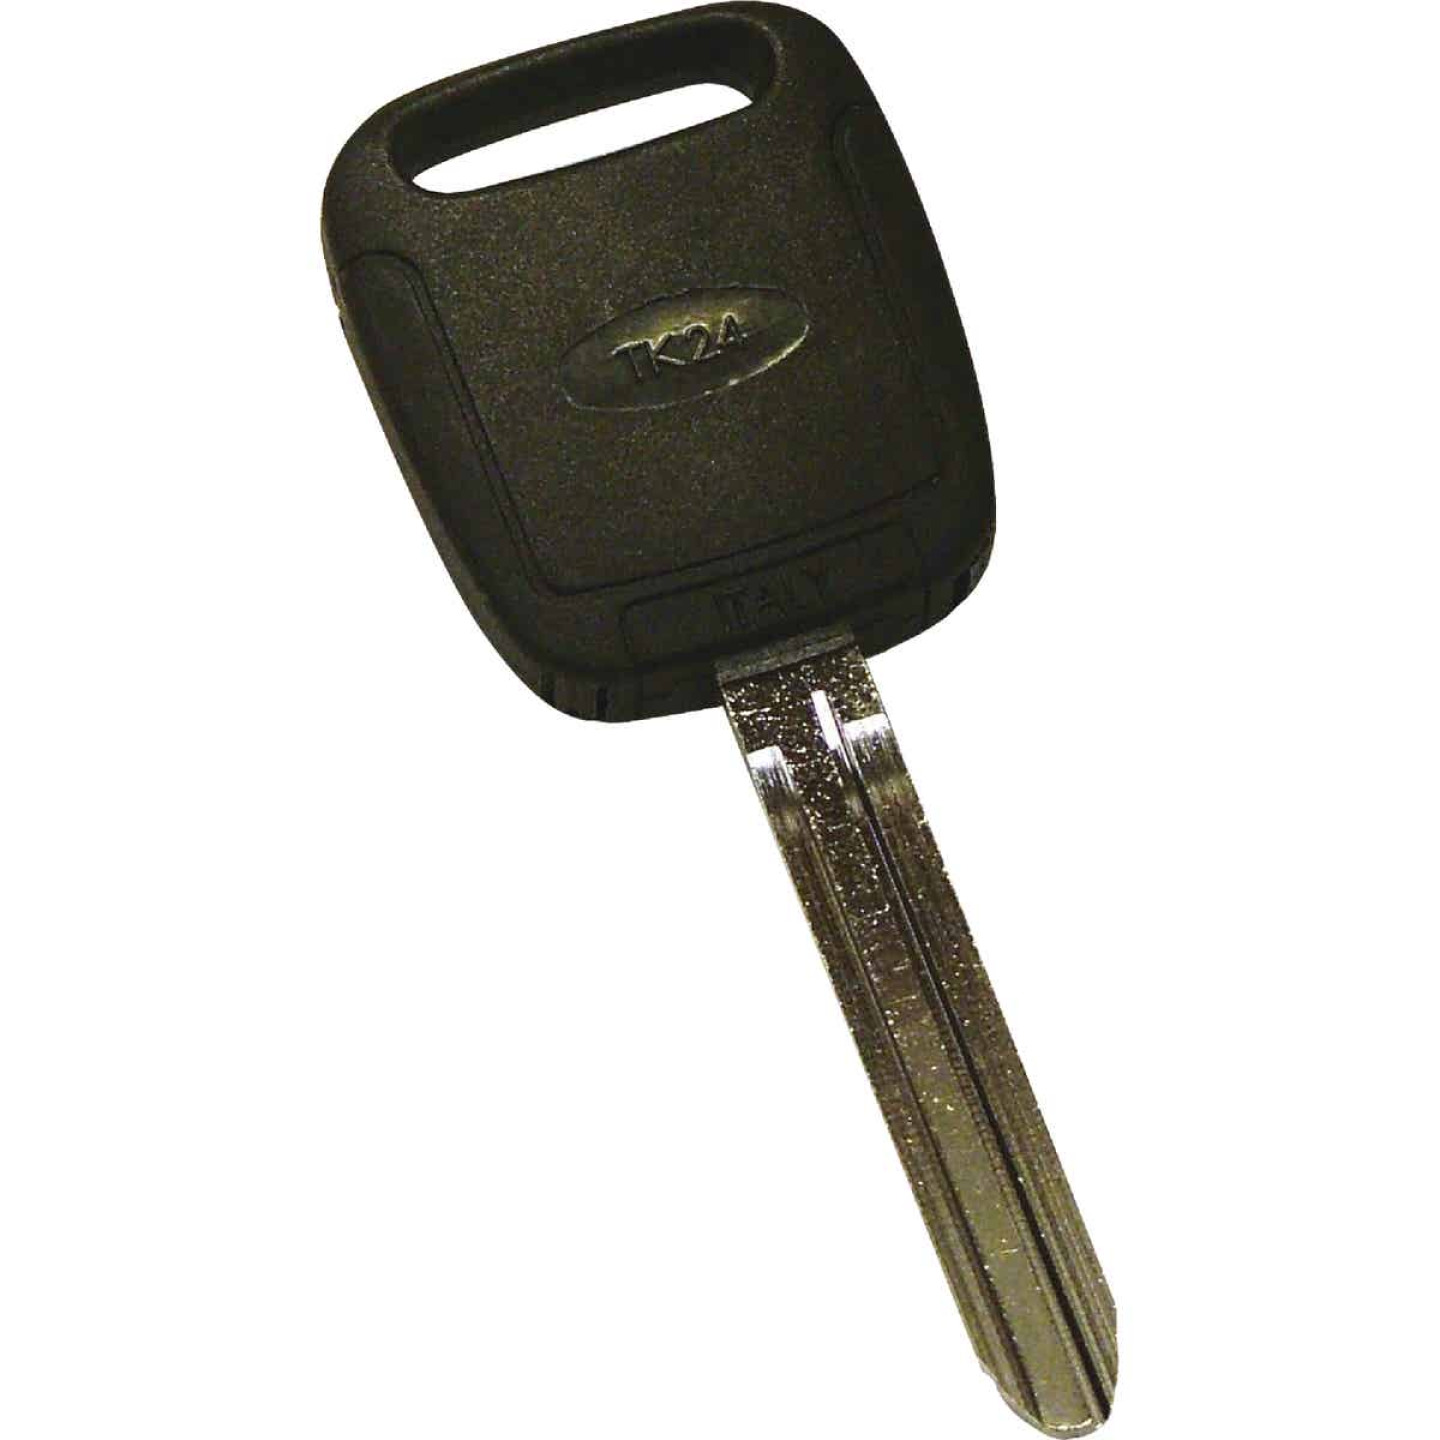 Hy-Ko Toyota Nickel Plated Programmable Chip Key Image 1